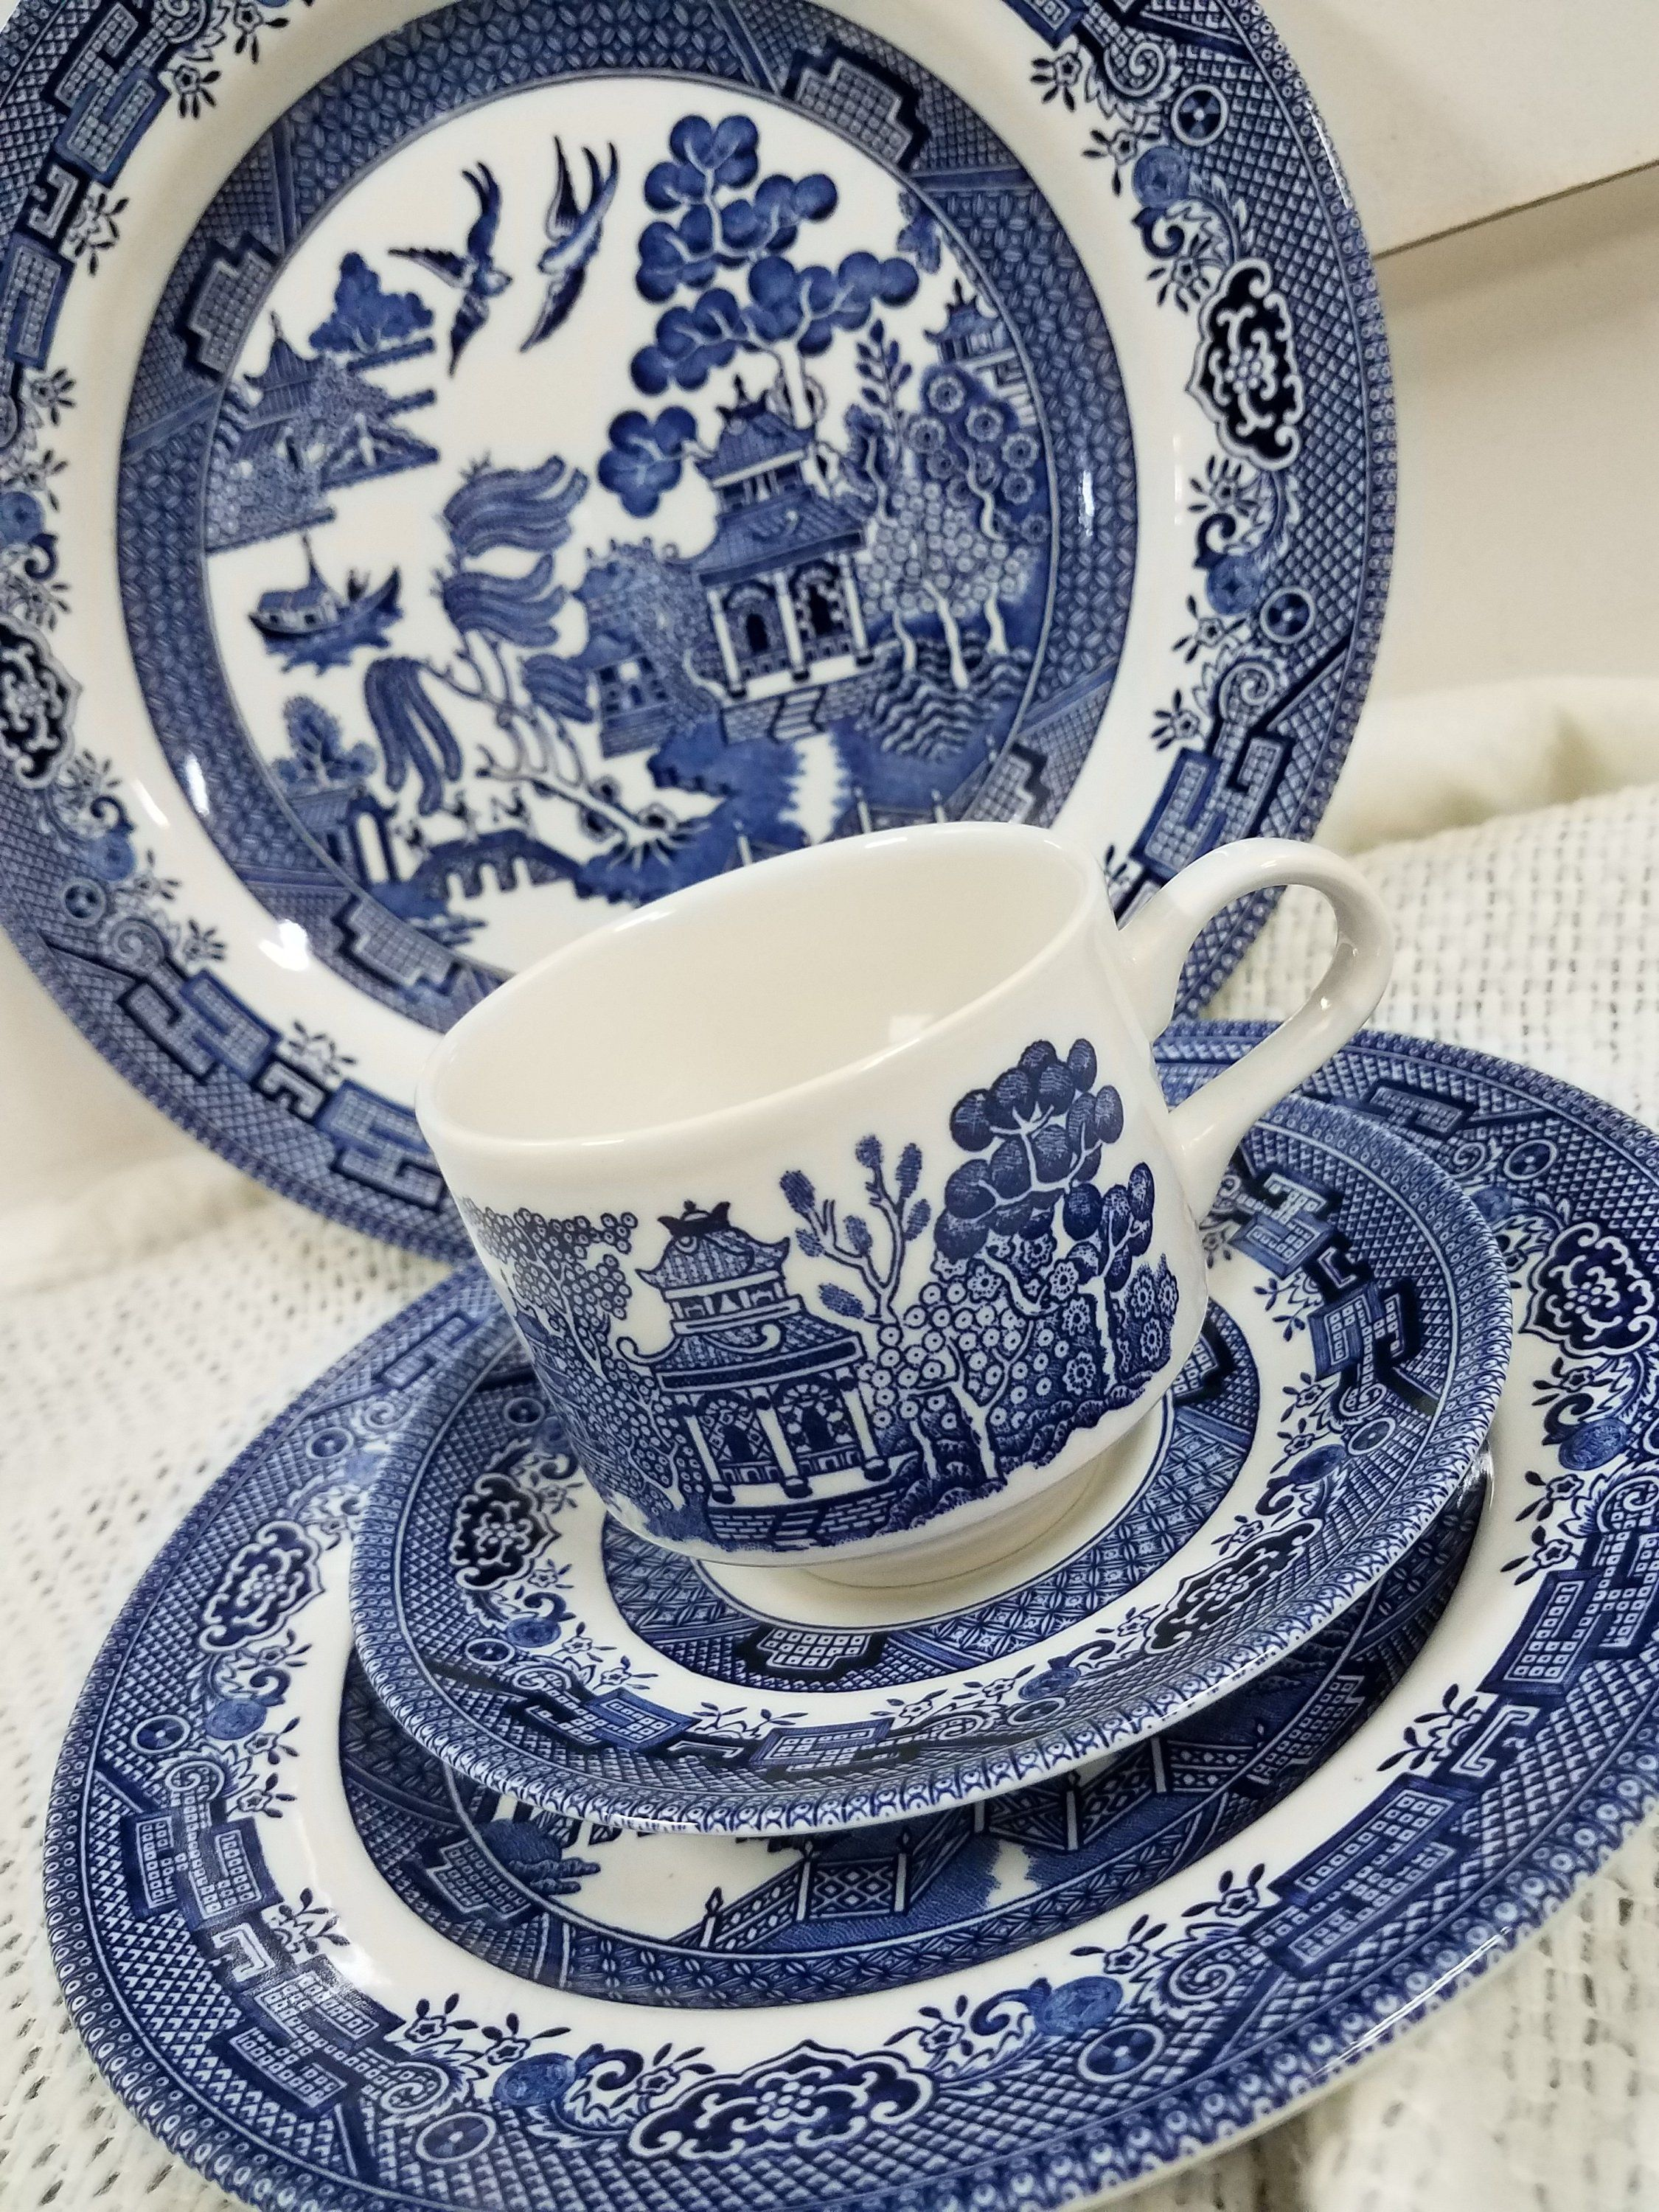 Vintage Blue Willow 4 Pc Place Setting By Churchill Made In Englan By Teresascholledesigns On Etsy Blue Willow Blue White Decor Willow Pattern